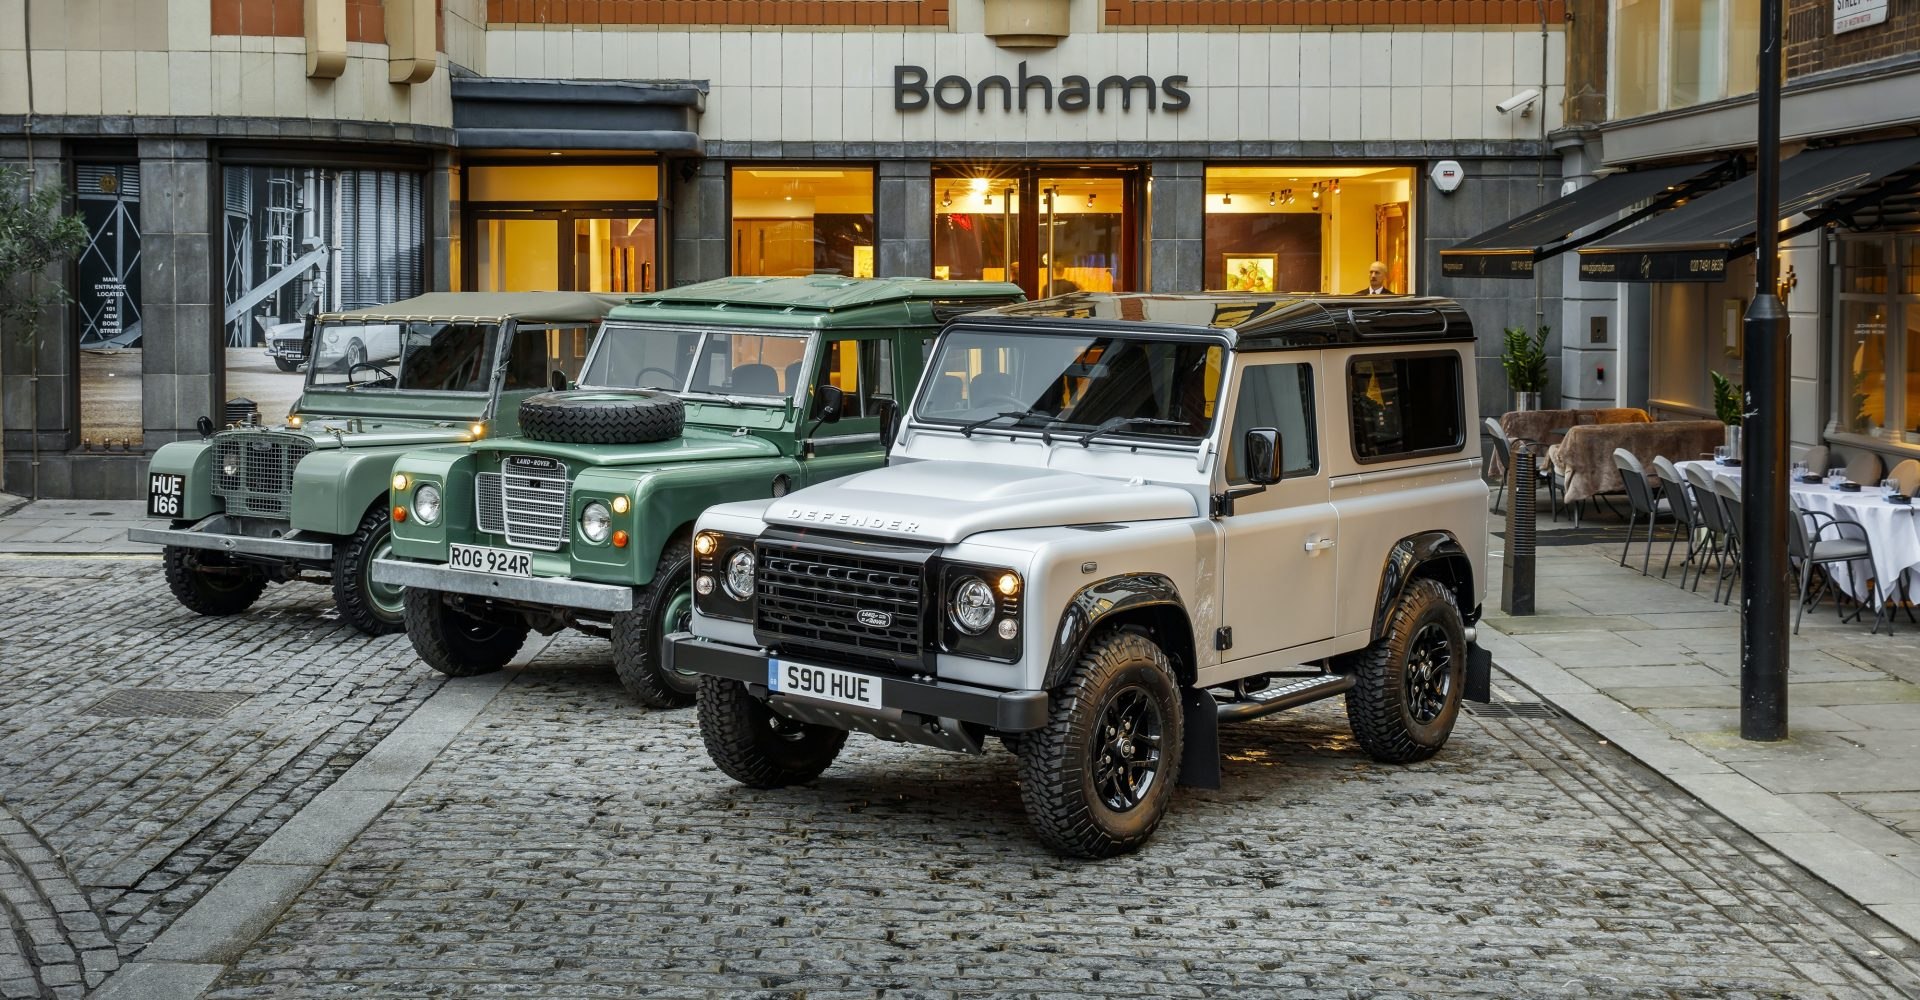 The history of the Land Rover Defender